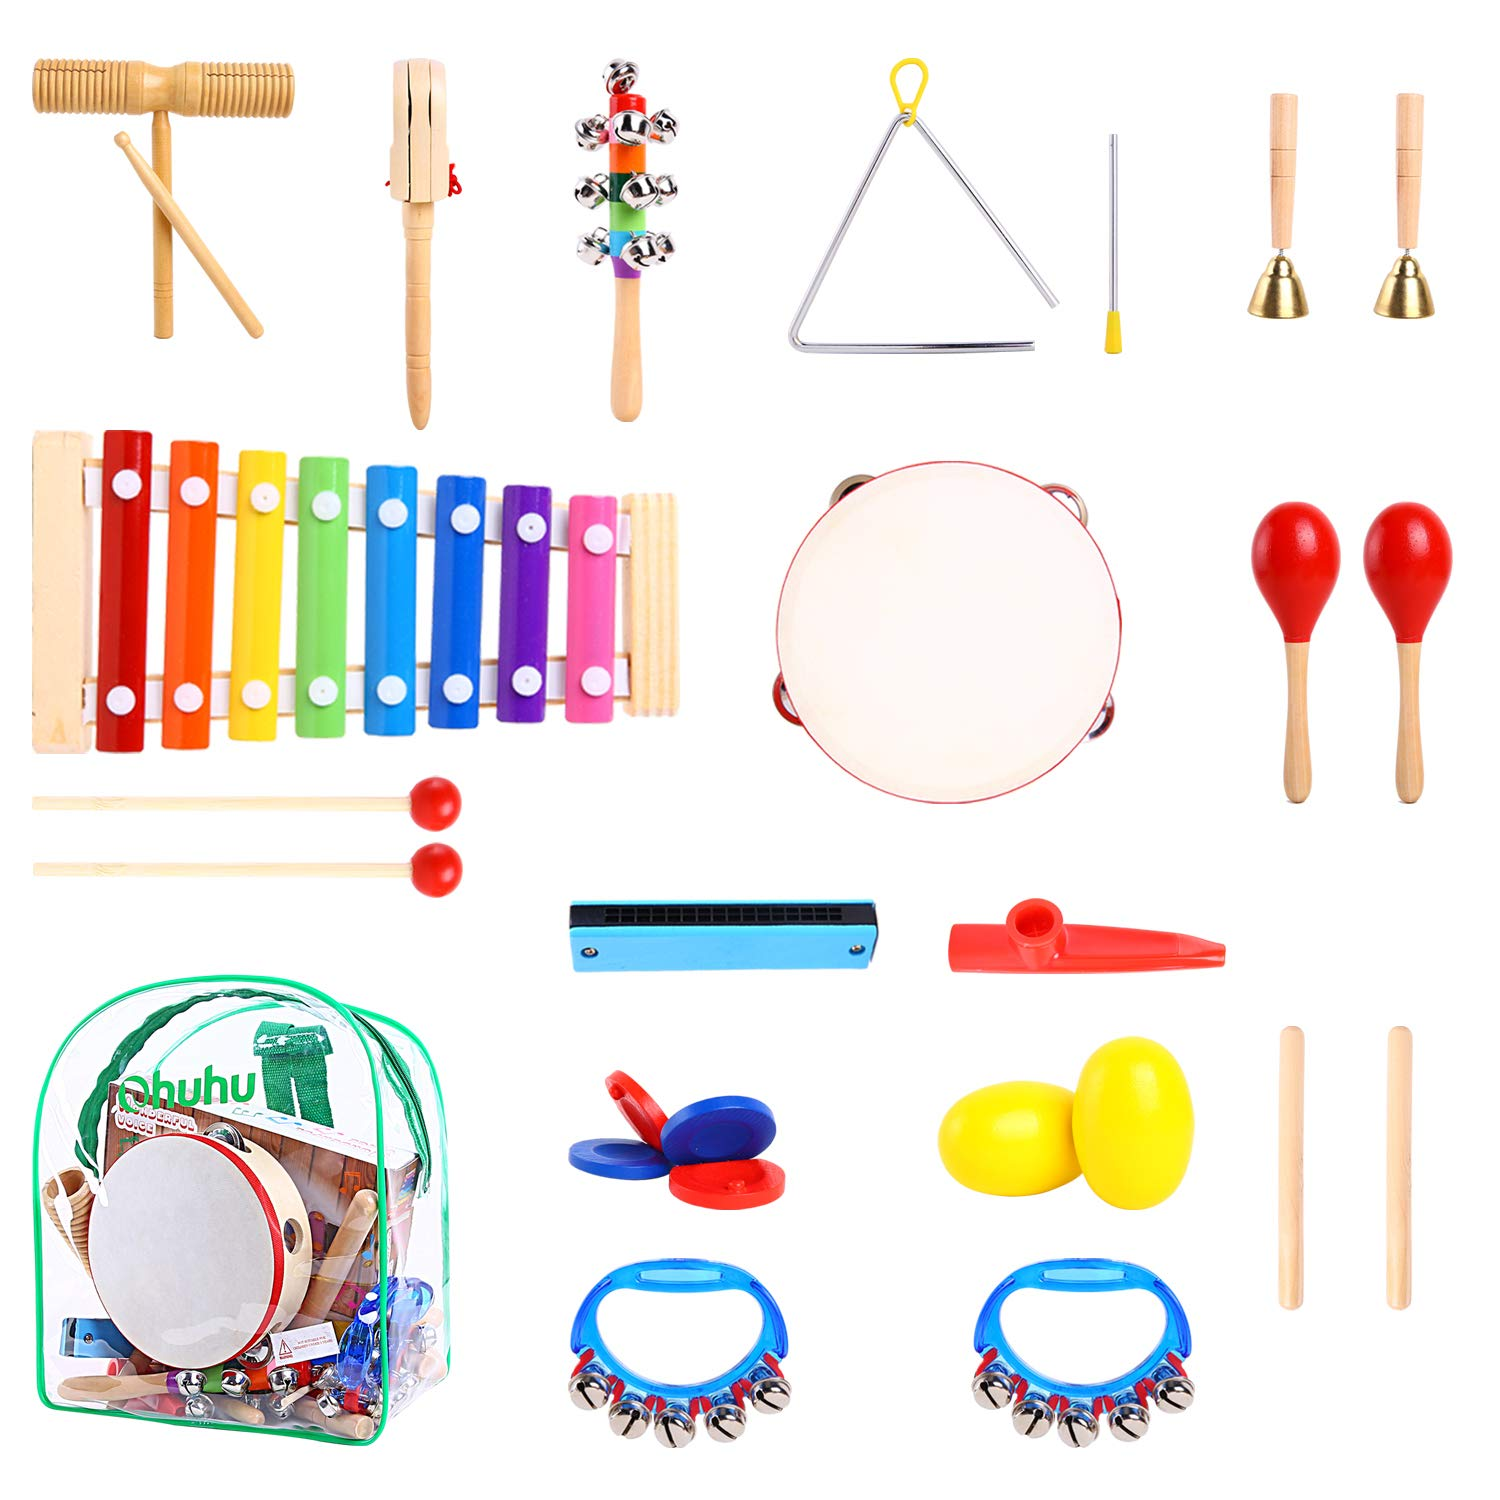 Ohuhu Kids Musical Instruments, 20 pcs Music Rhythm Percussion Set for Children Kid Toy Tambourine Xylophone, Storage Backpack Included, CPSC Approved, Birthday Xmas Presents